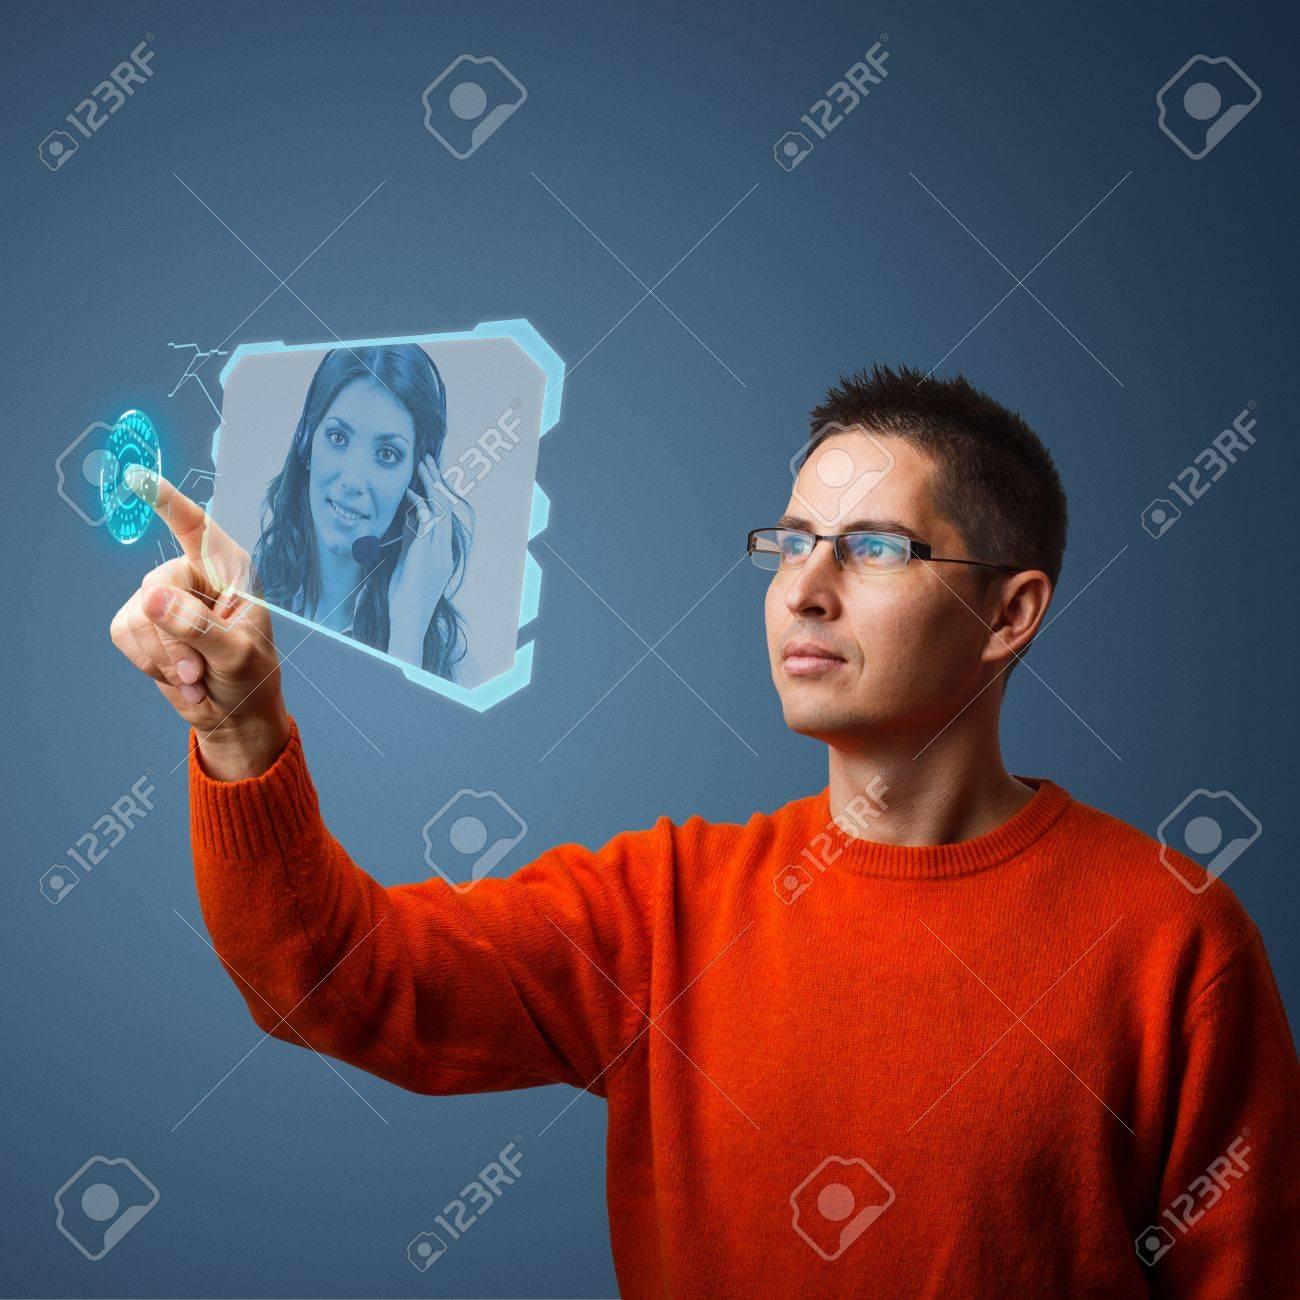 Young man pushing digital button on tablet screen Stock Photo - 17218153